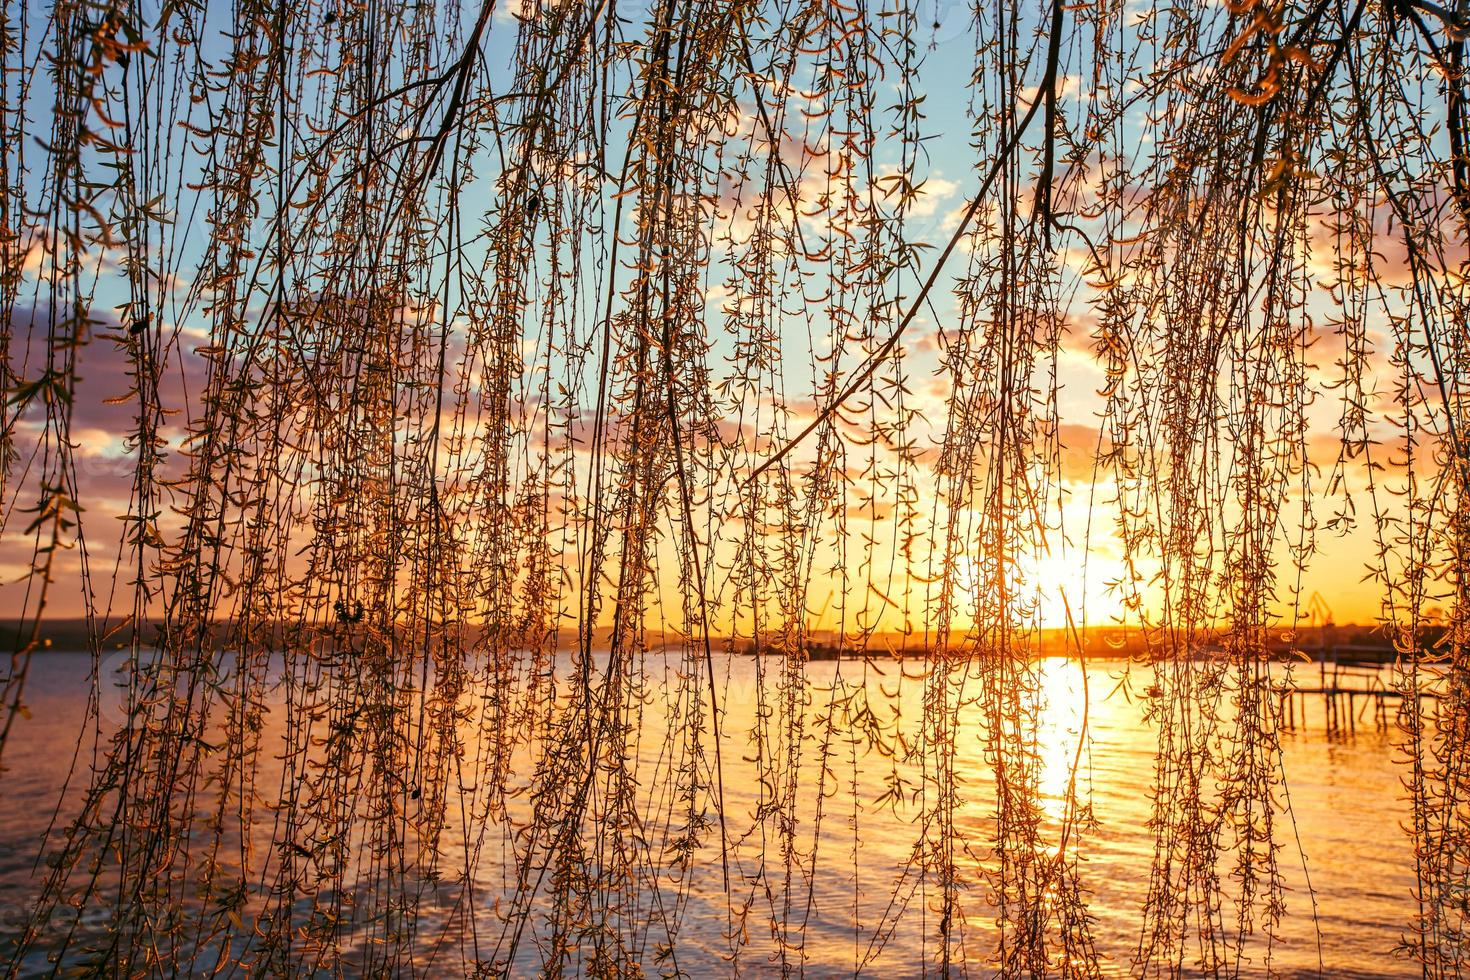 Osier by the river and beautiful sunset photo